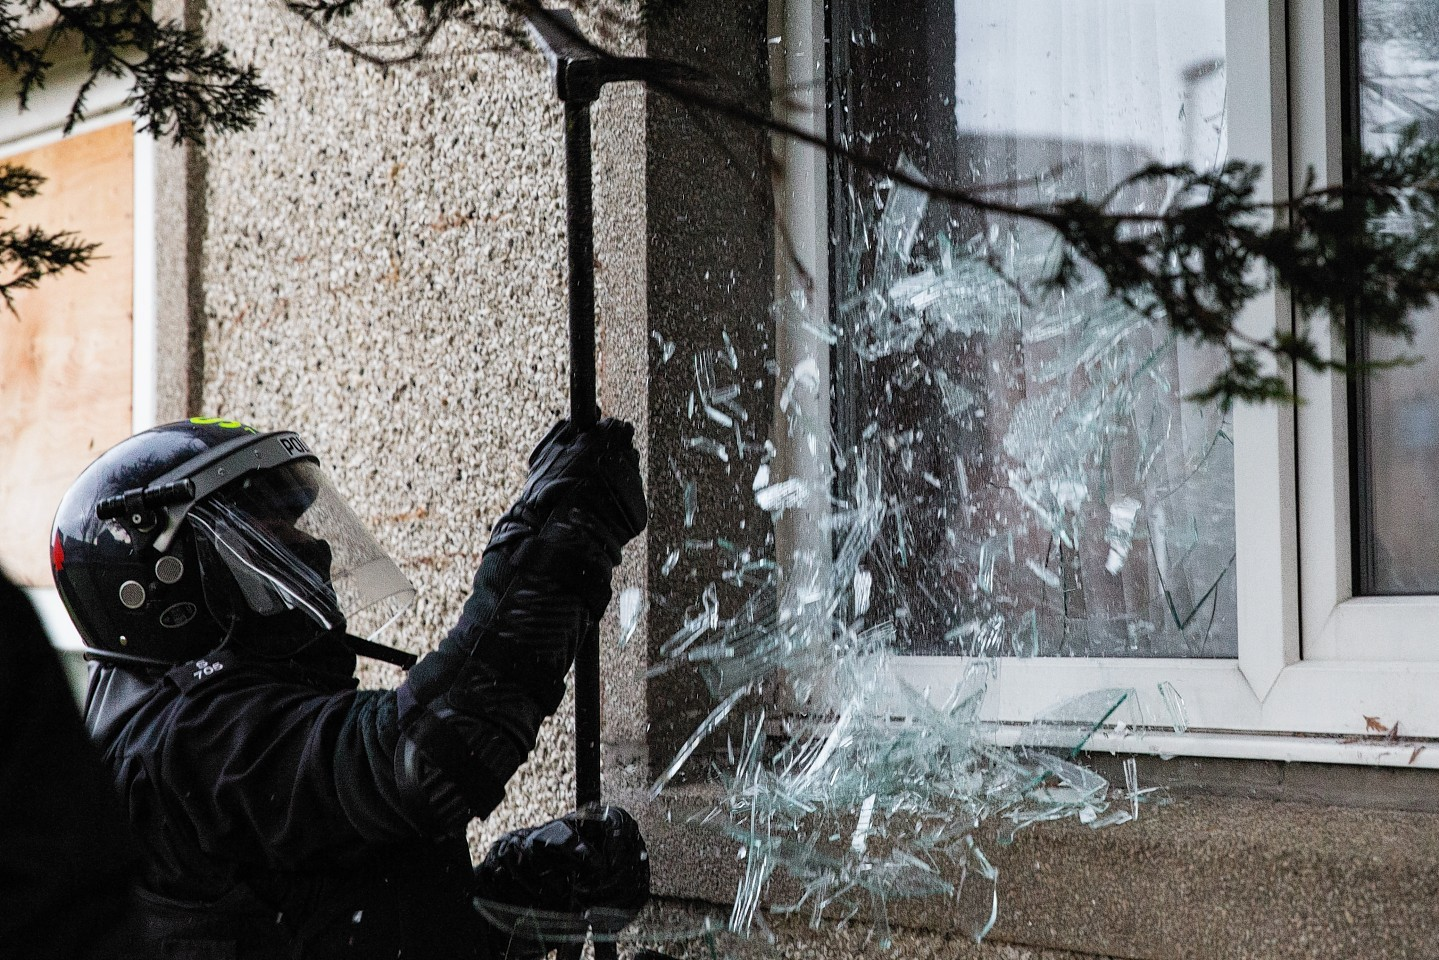 Police break a window to gain entry into a raided property.